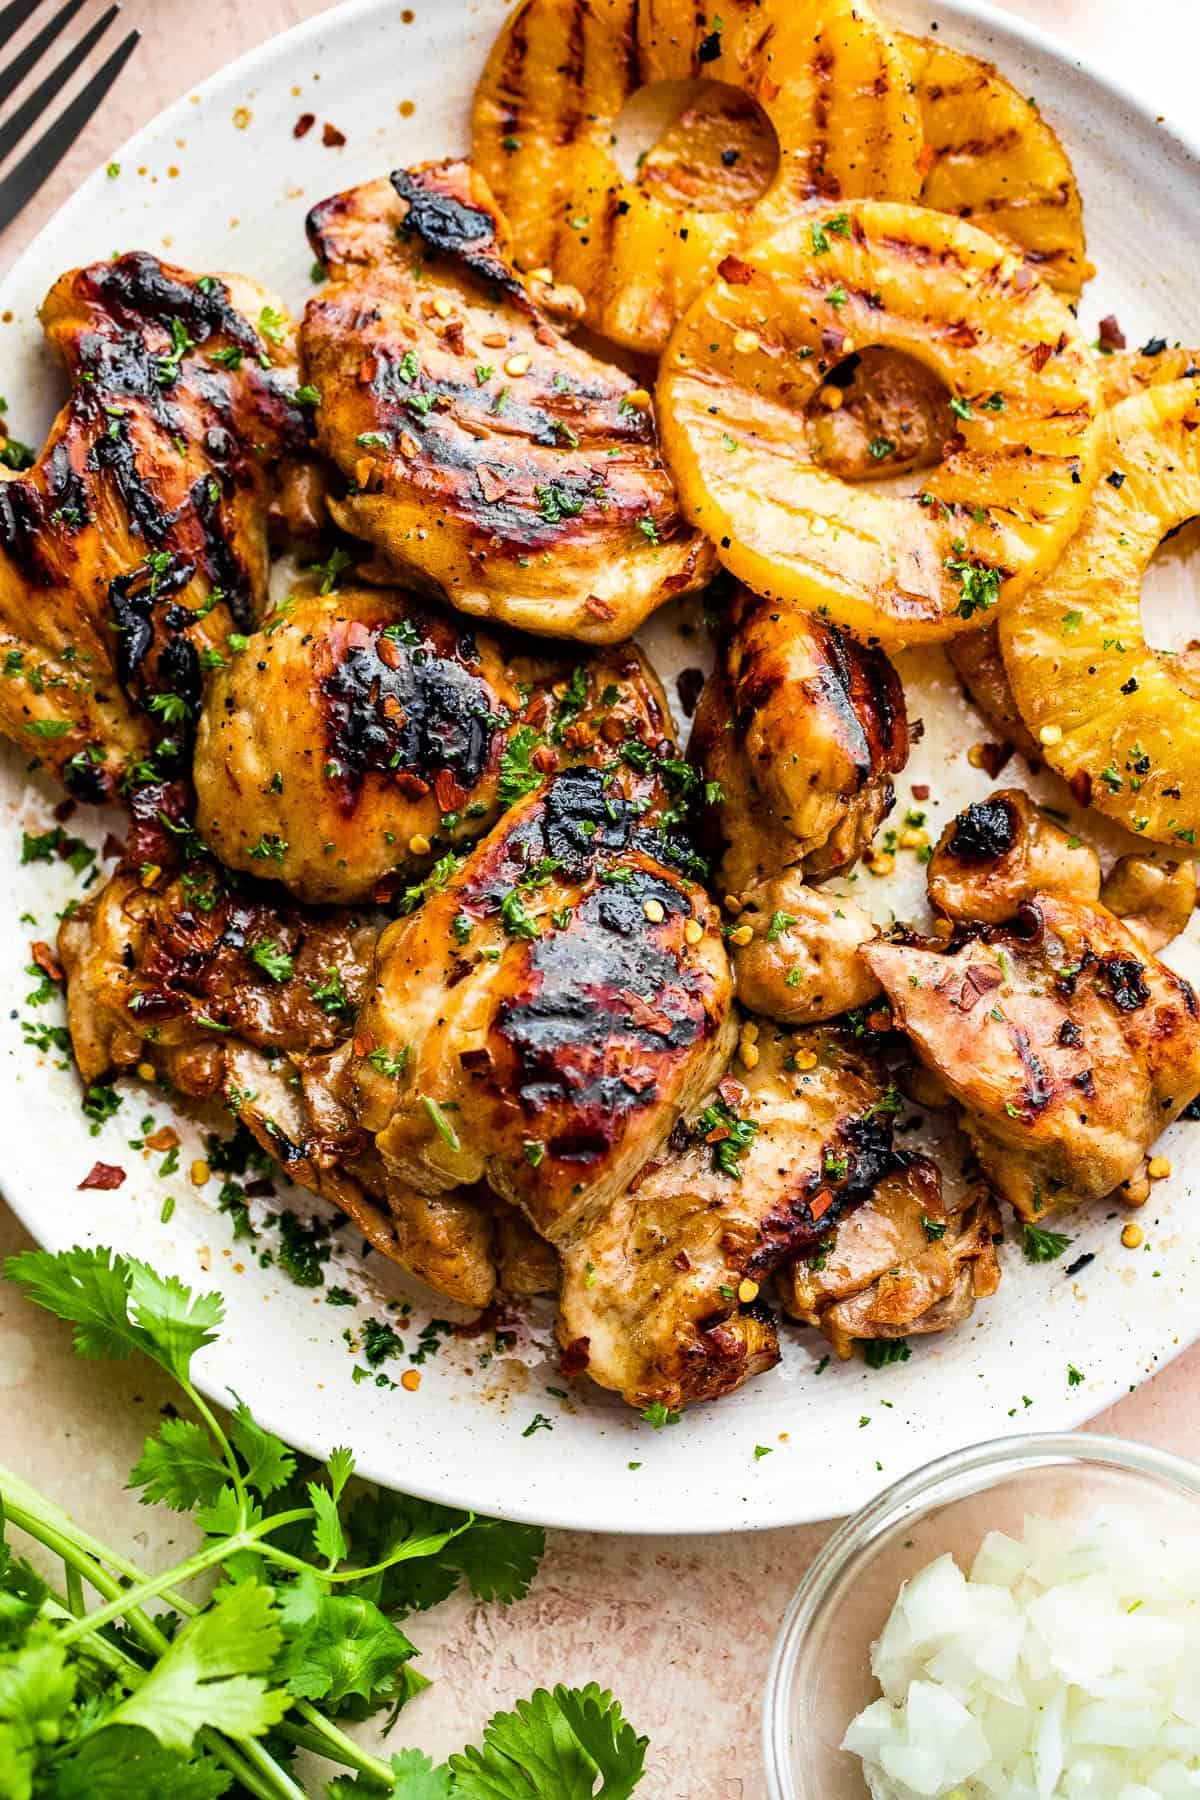 grilled chicken thighs and pineapples served on a white round plate